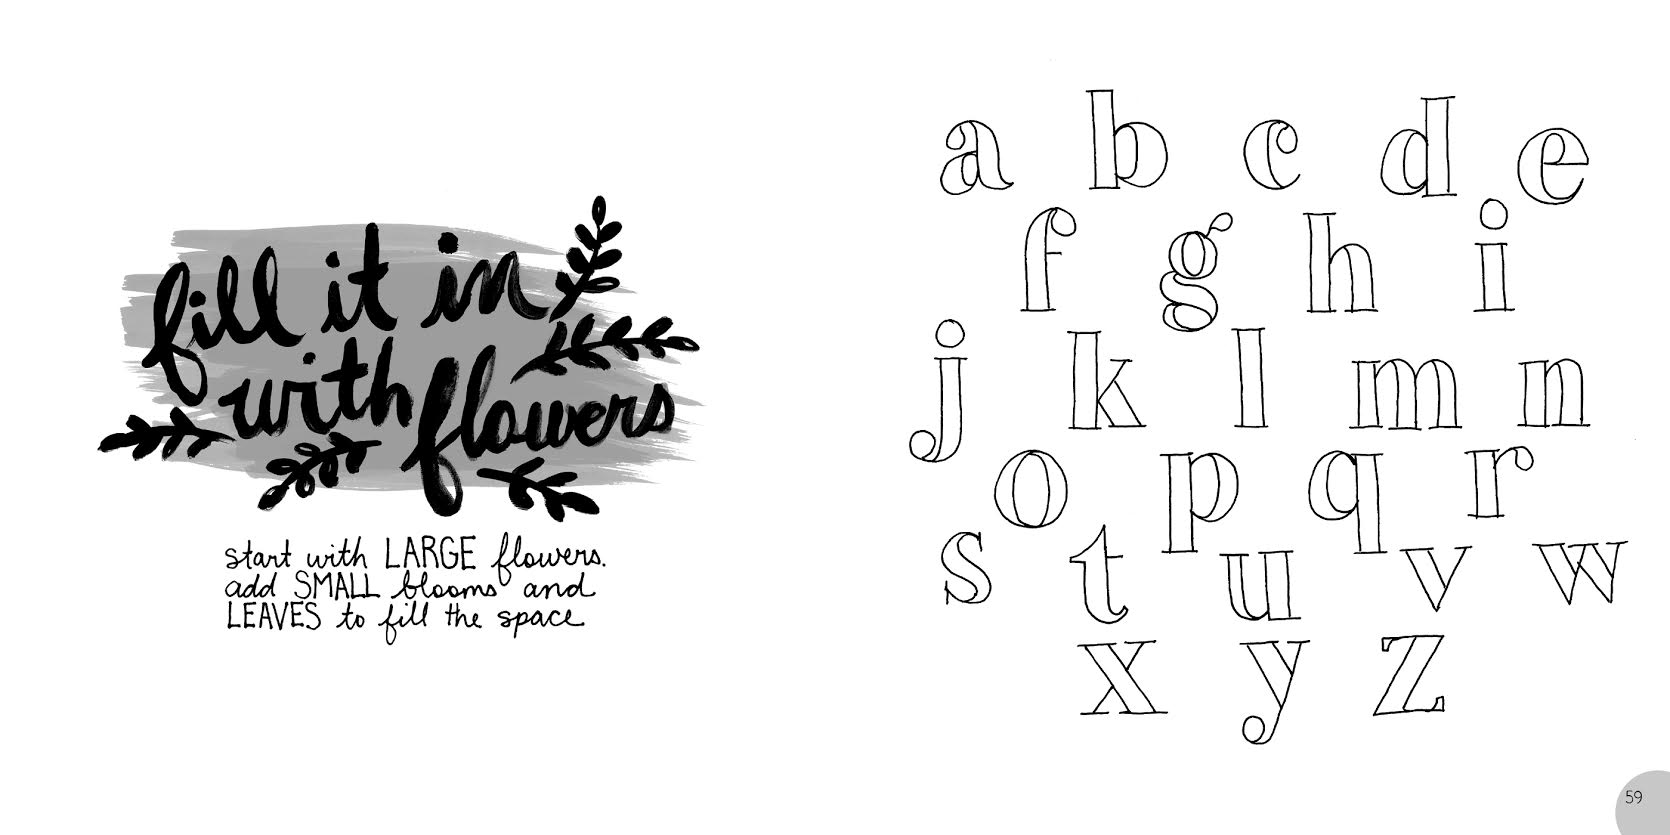 The Botanical Hand-Lettering Workbook {Interview, Review